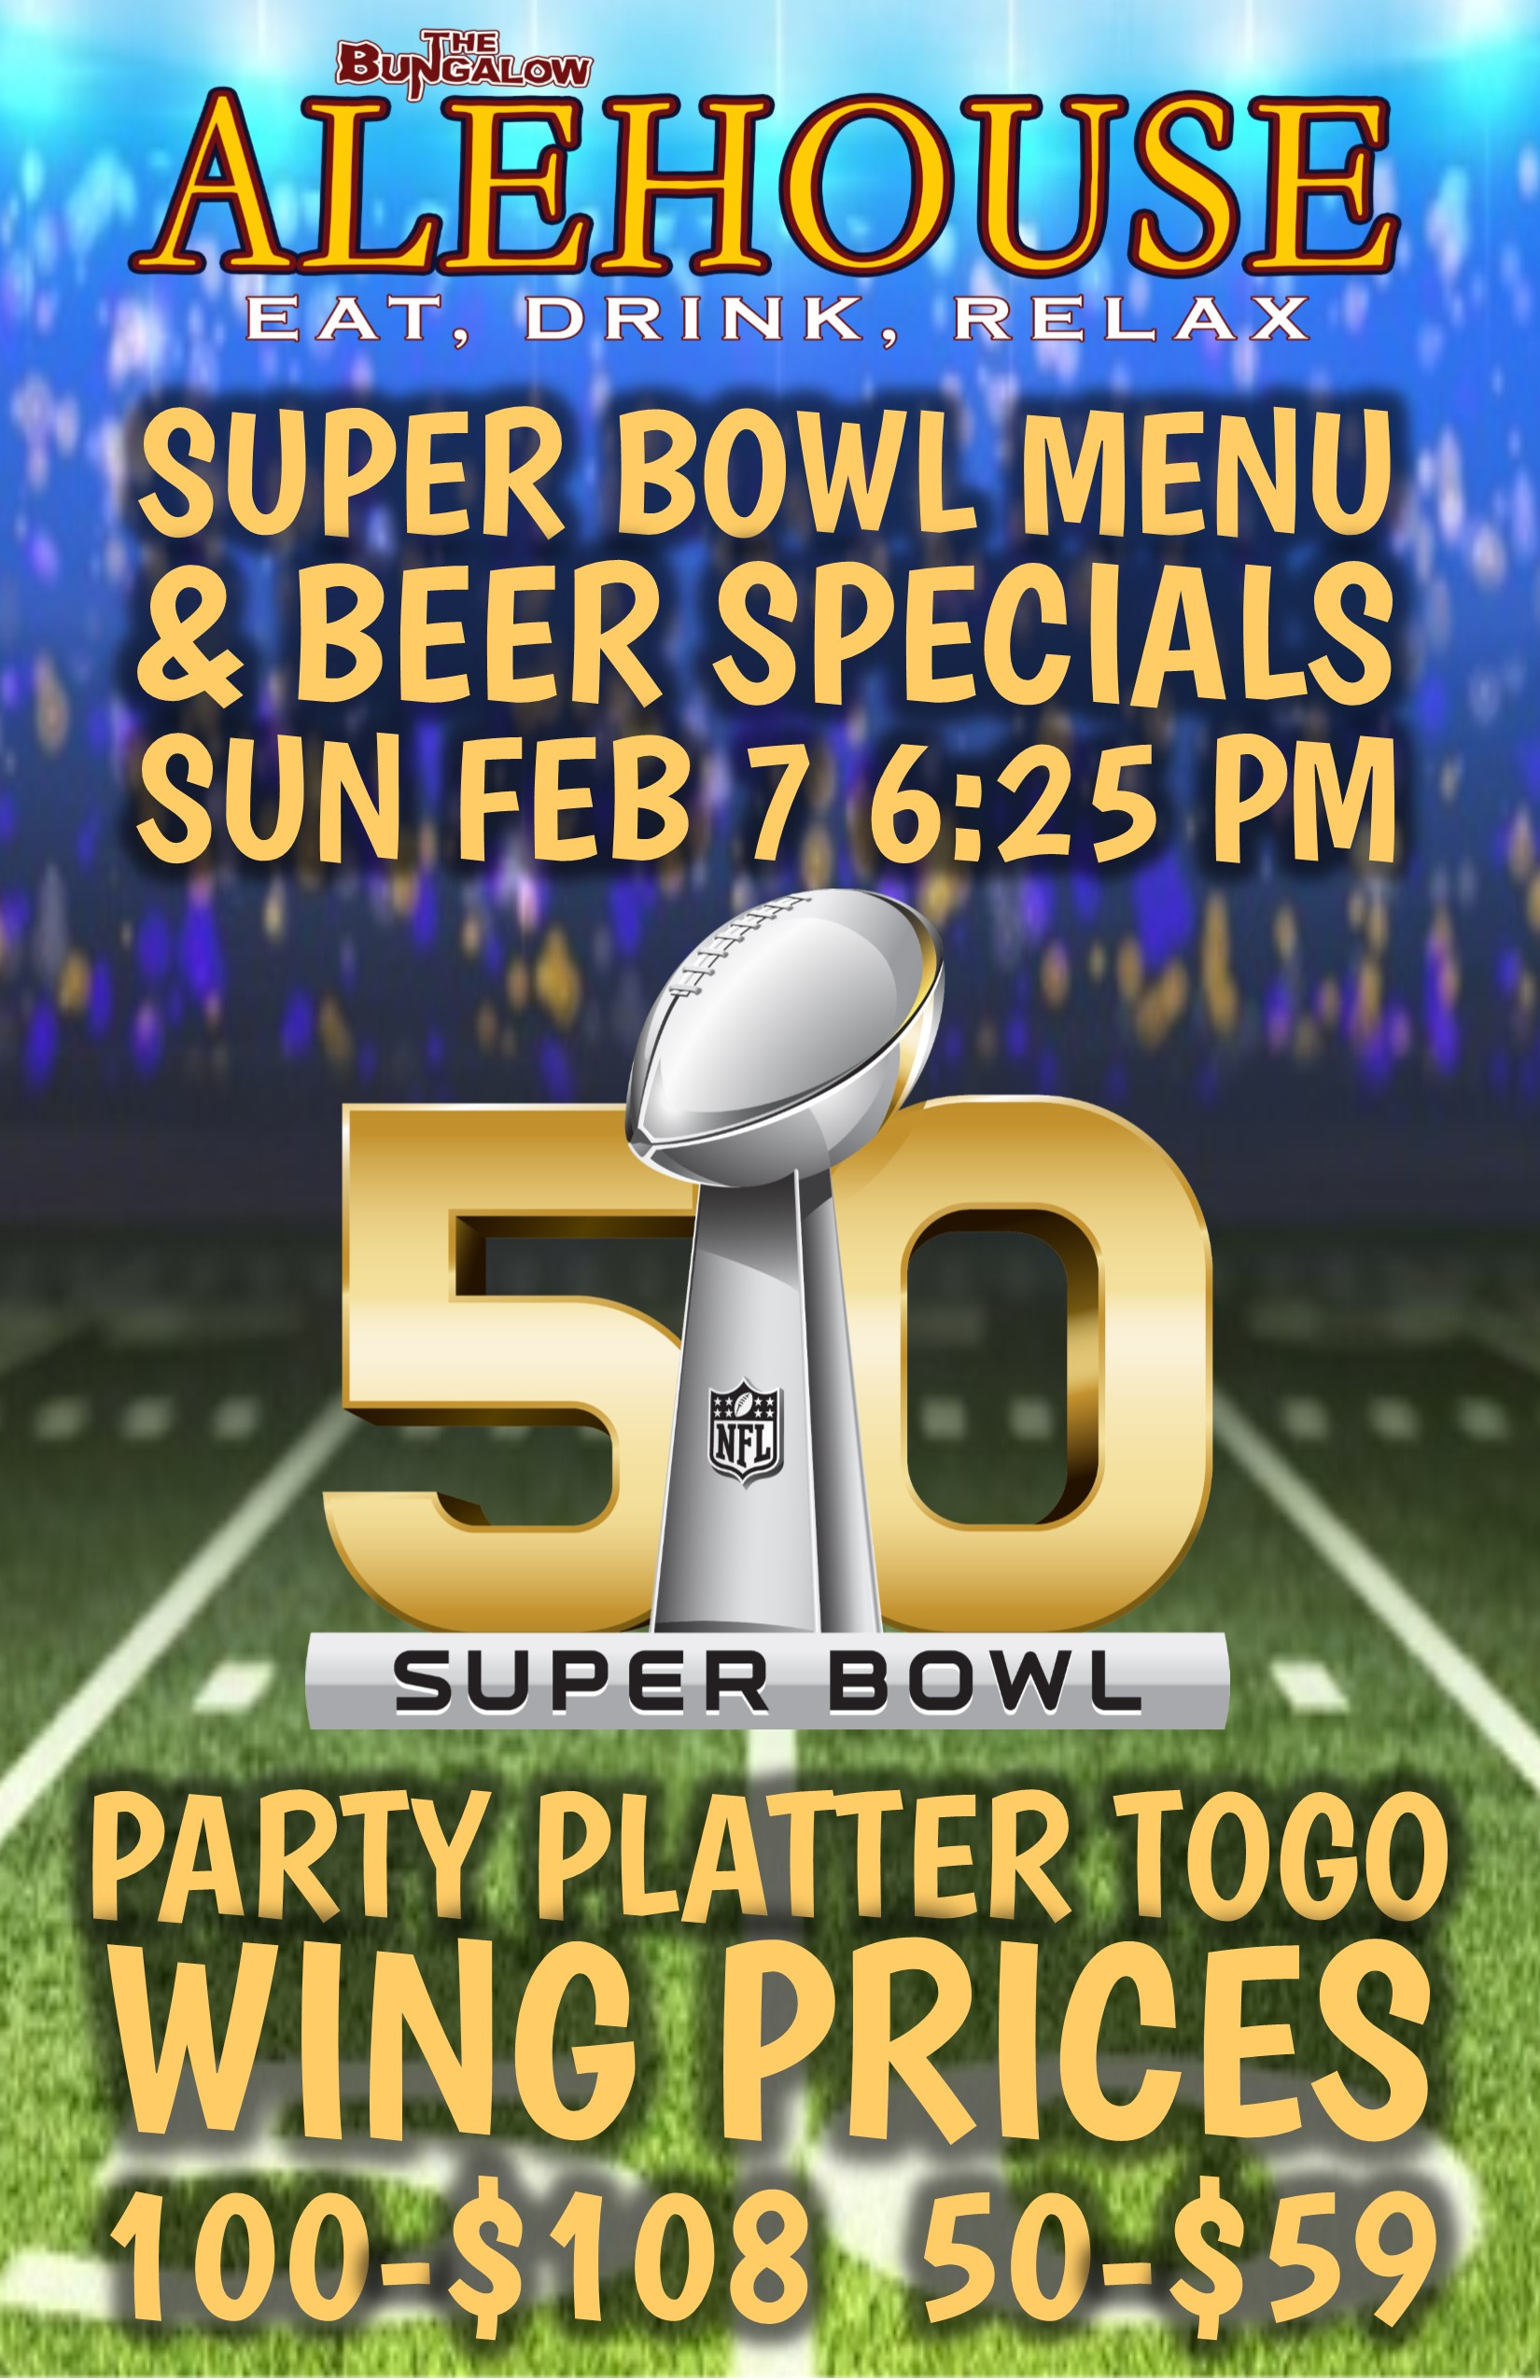 Alehouse super bowl 2016